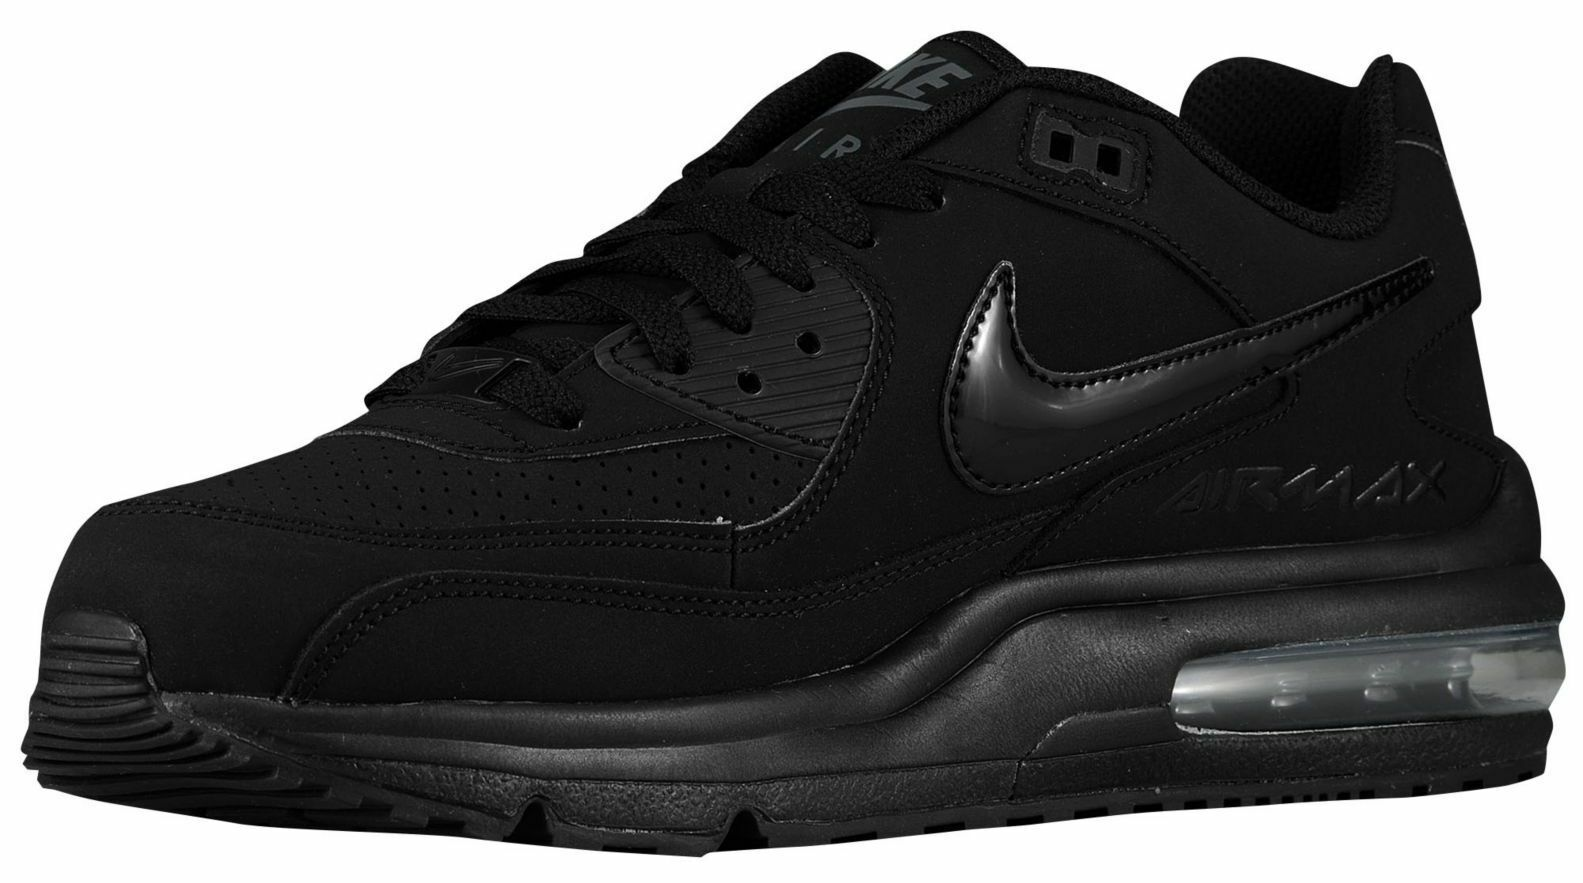 nike air new max wright männer wildleder kandidiere, schwarz, anthrazit new air in box größe fd14c3